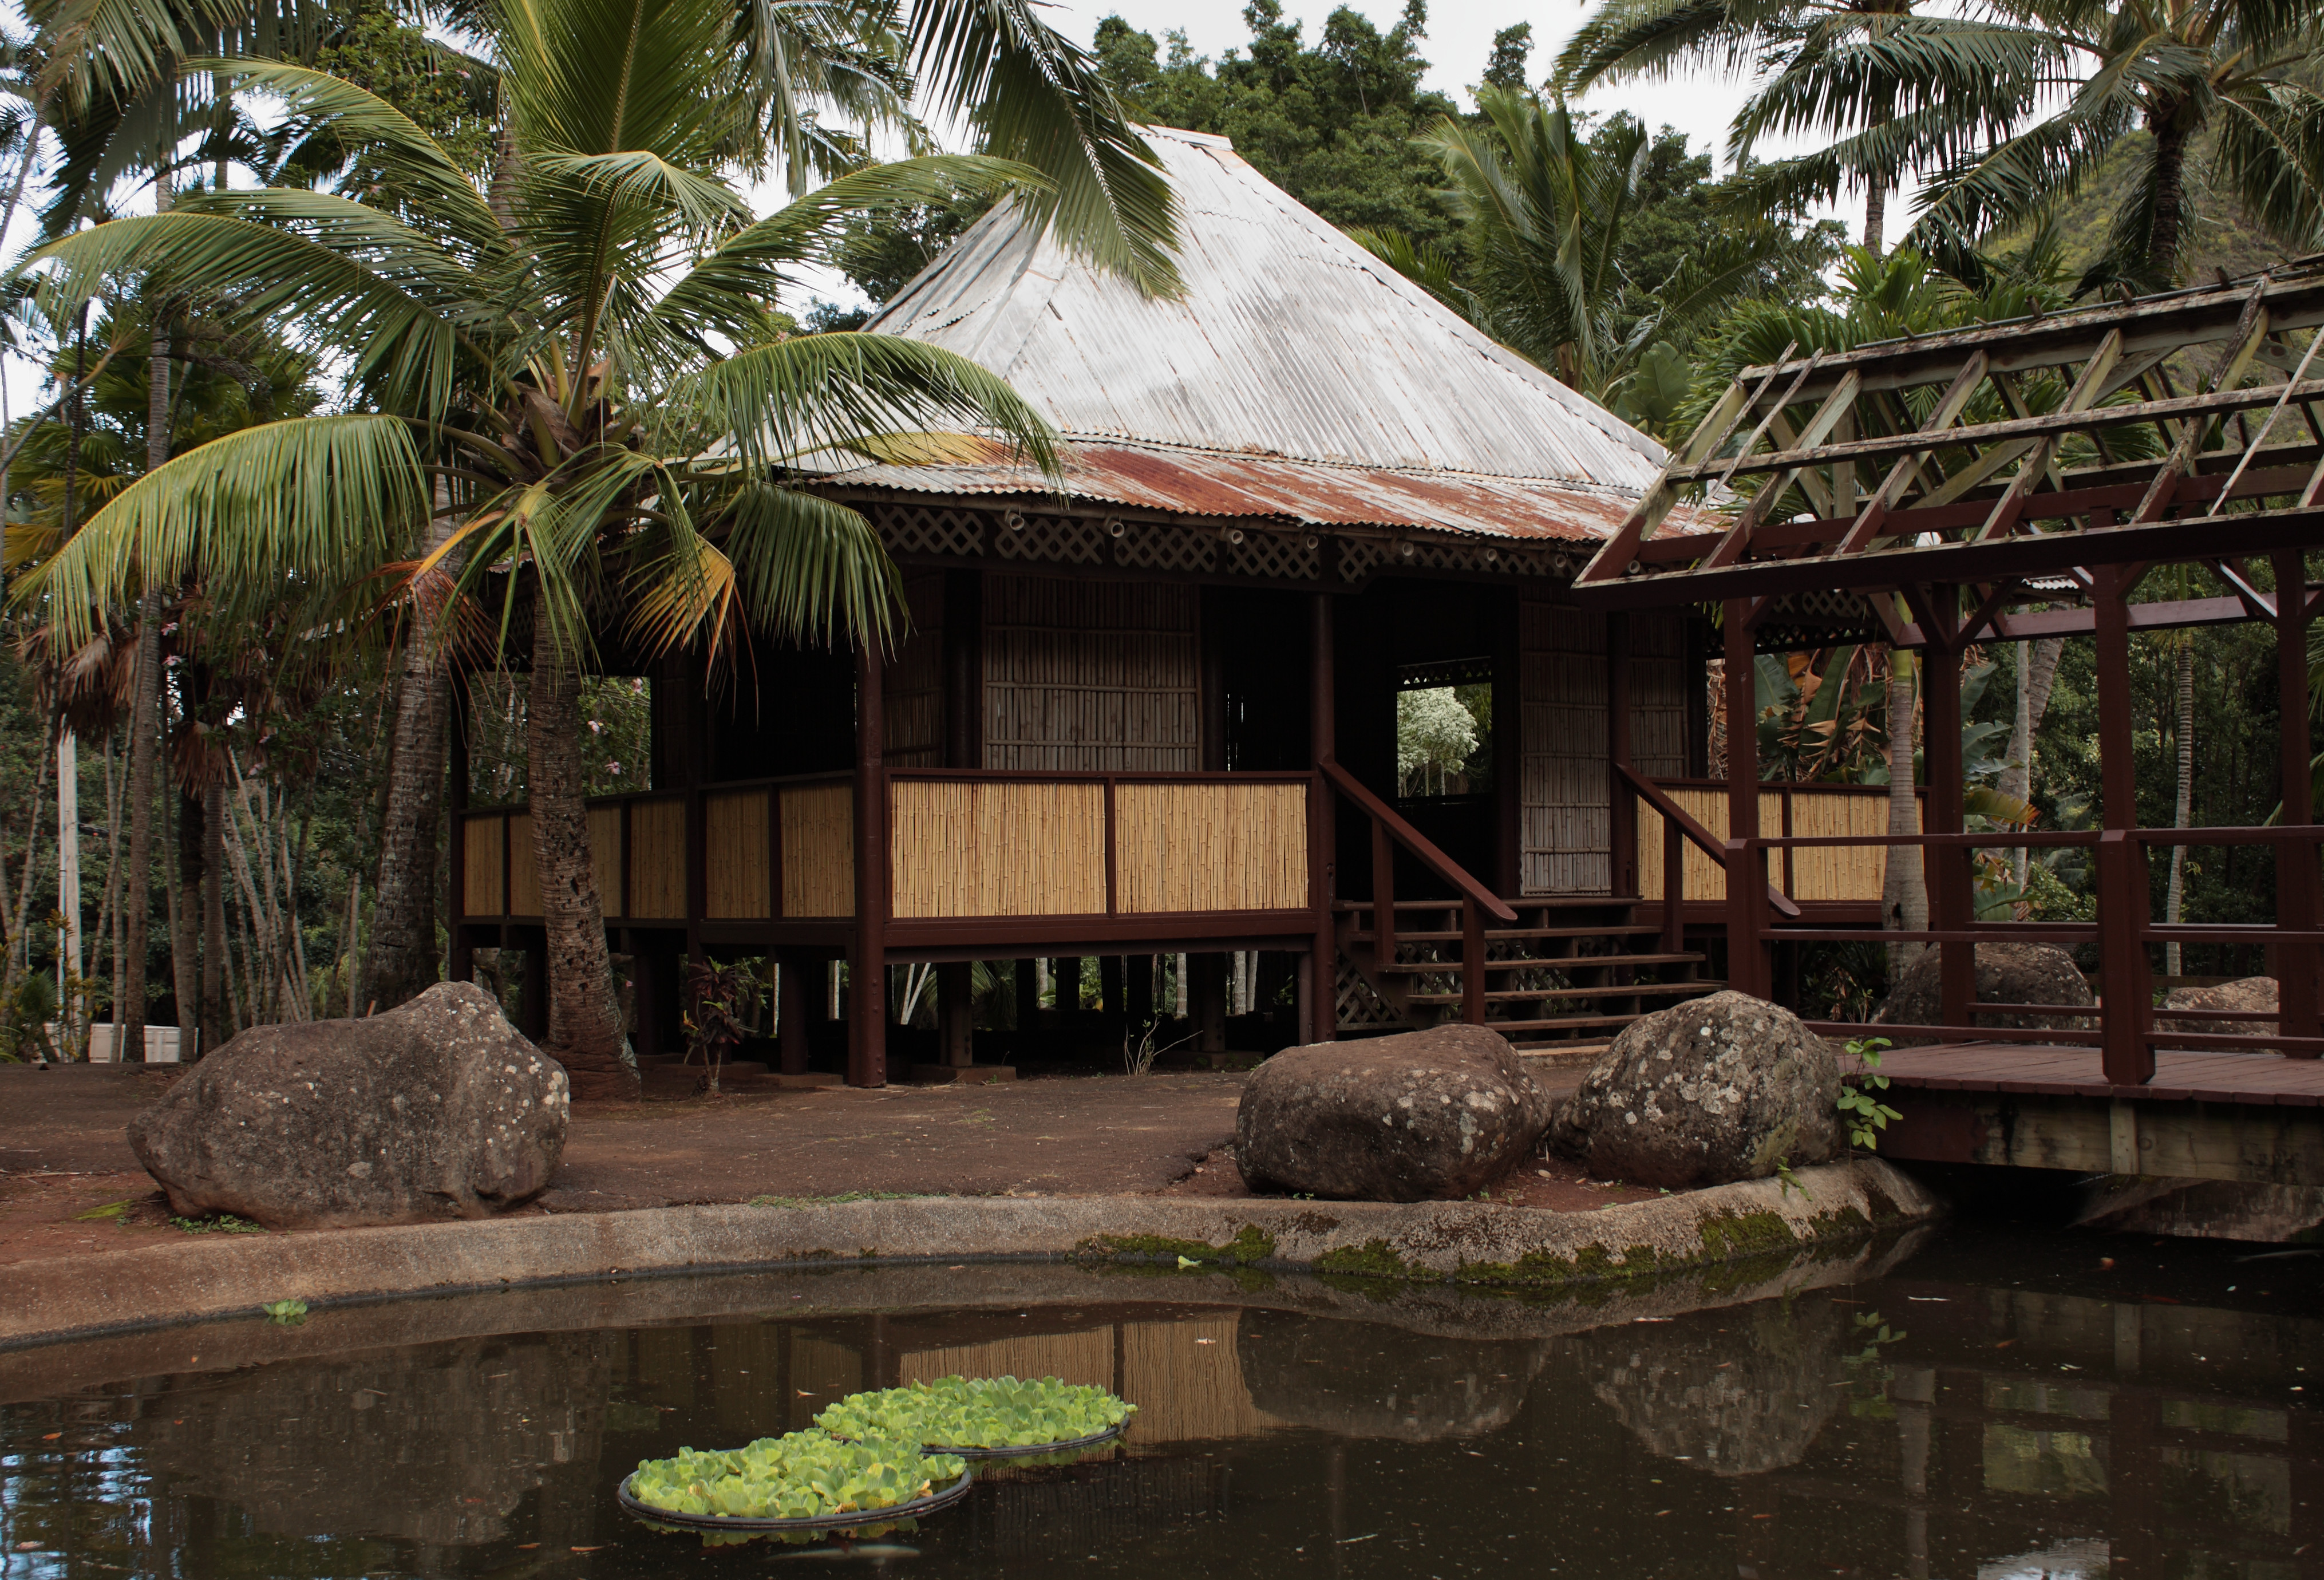 Description Bahay Kubo Iao Valley Maui Hawaii.jpg